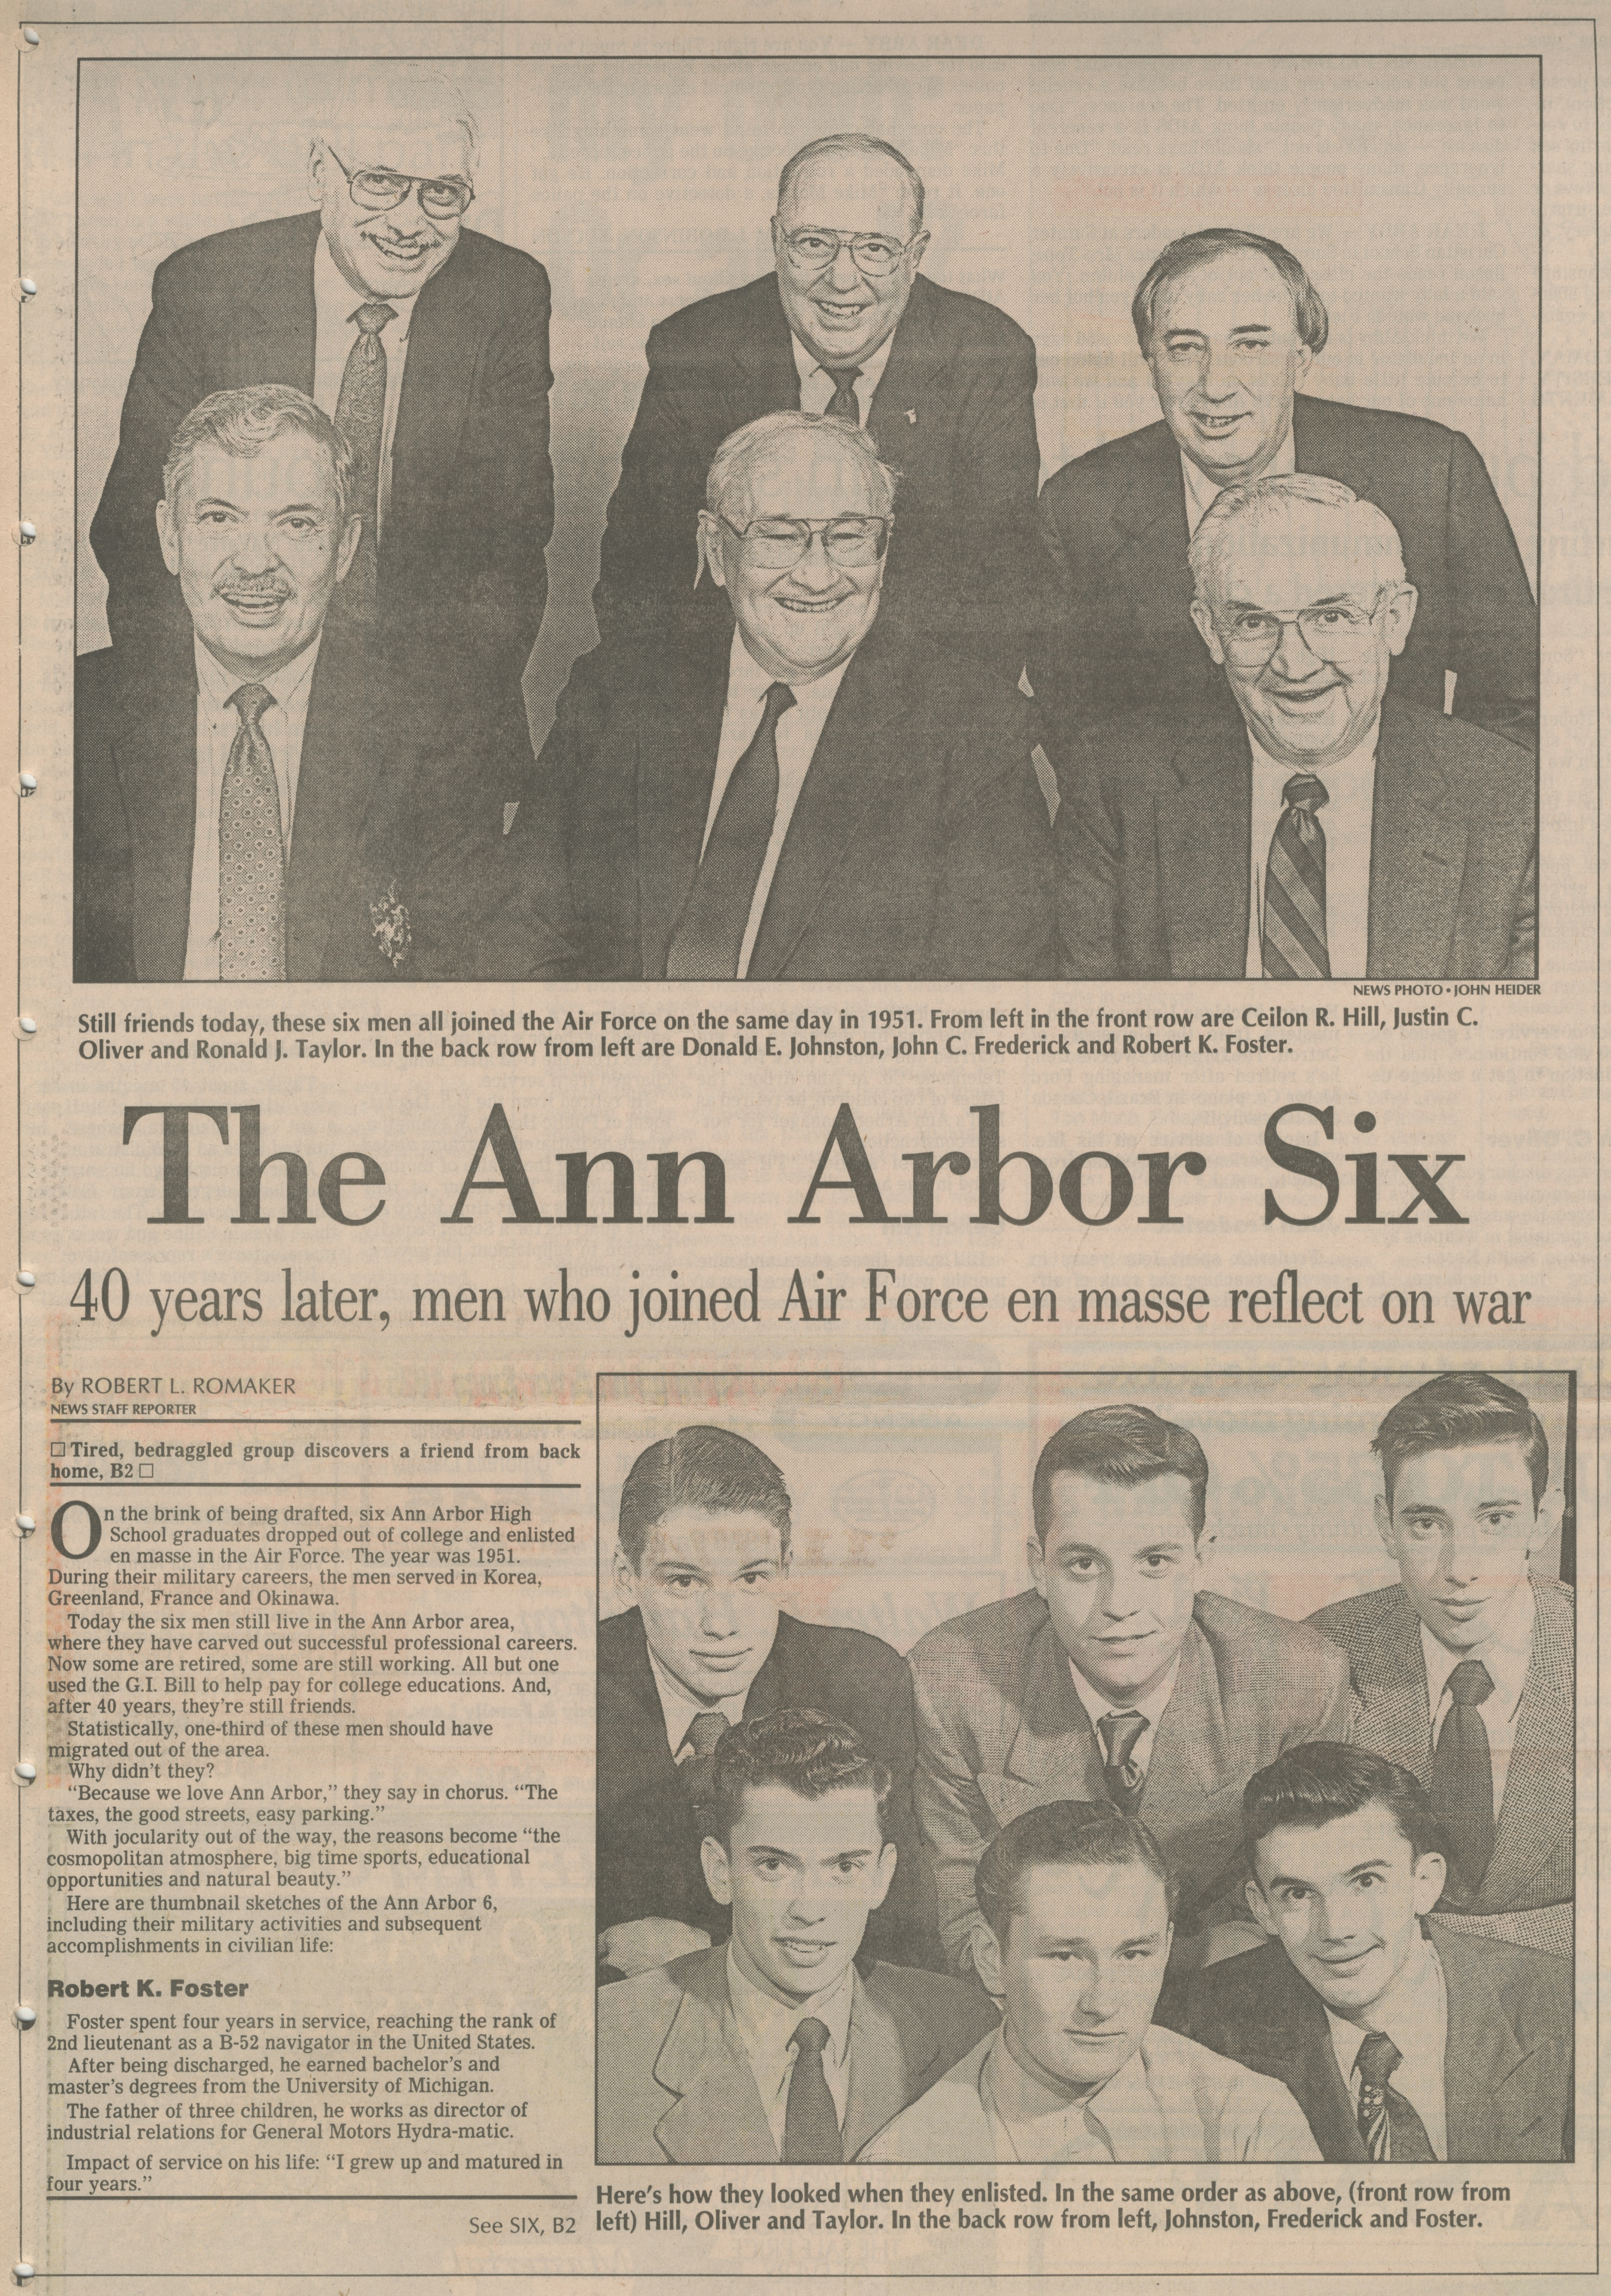 The Ann Arbor Six image